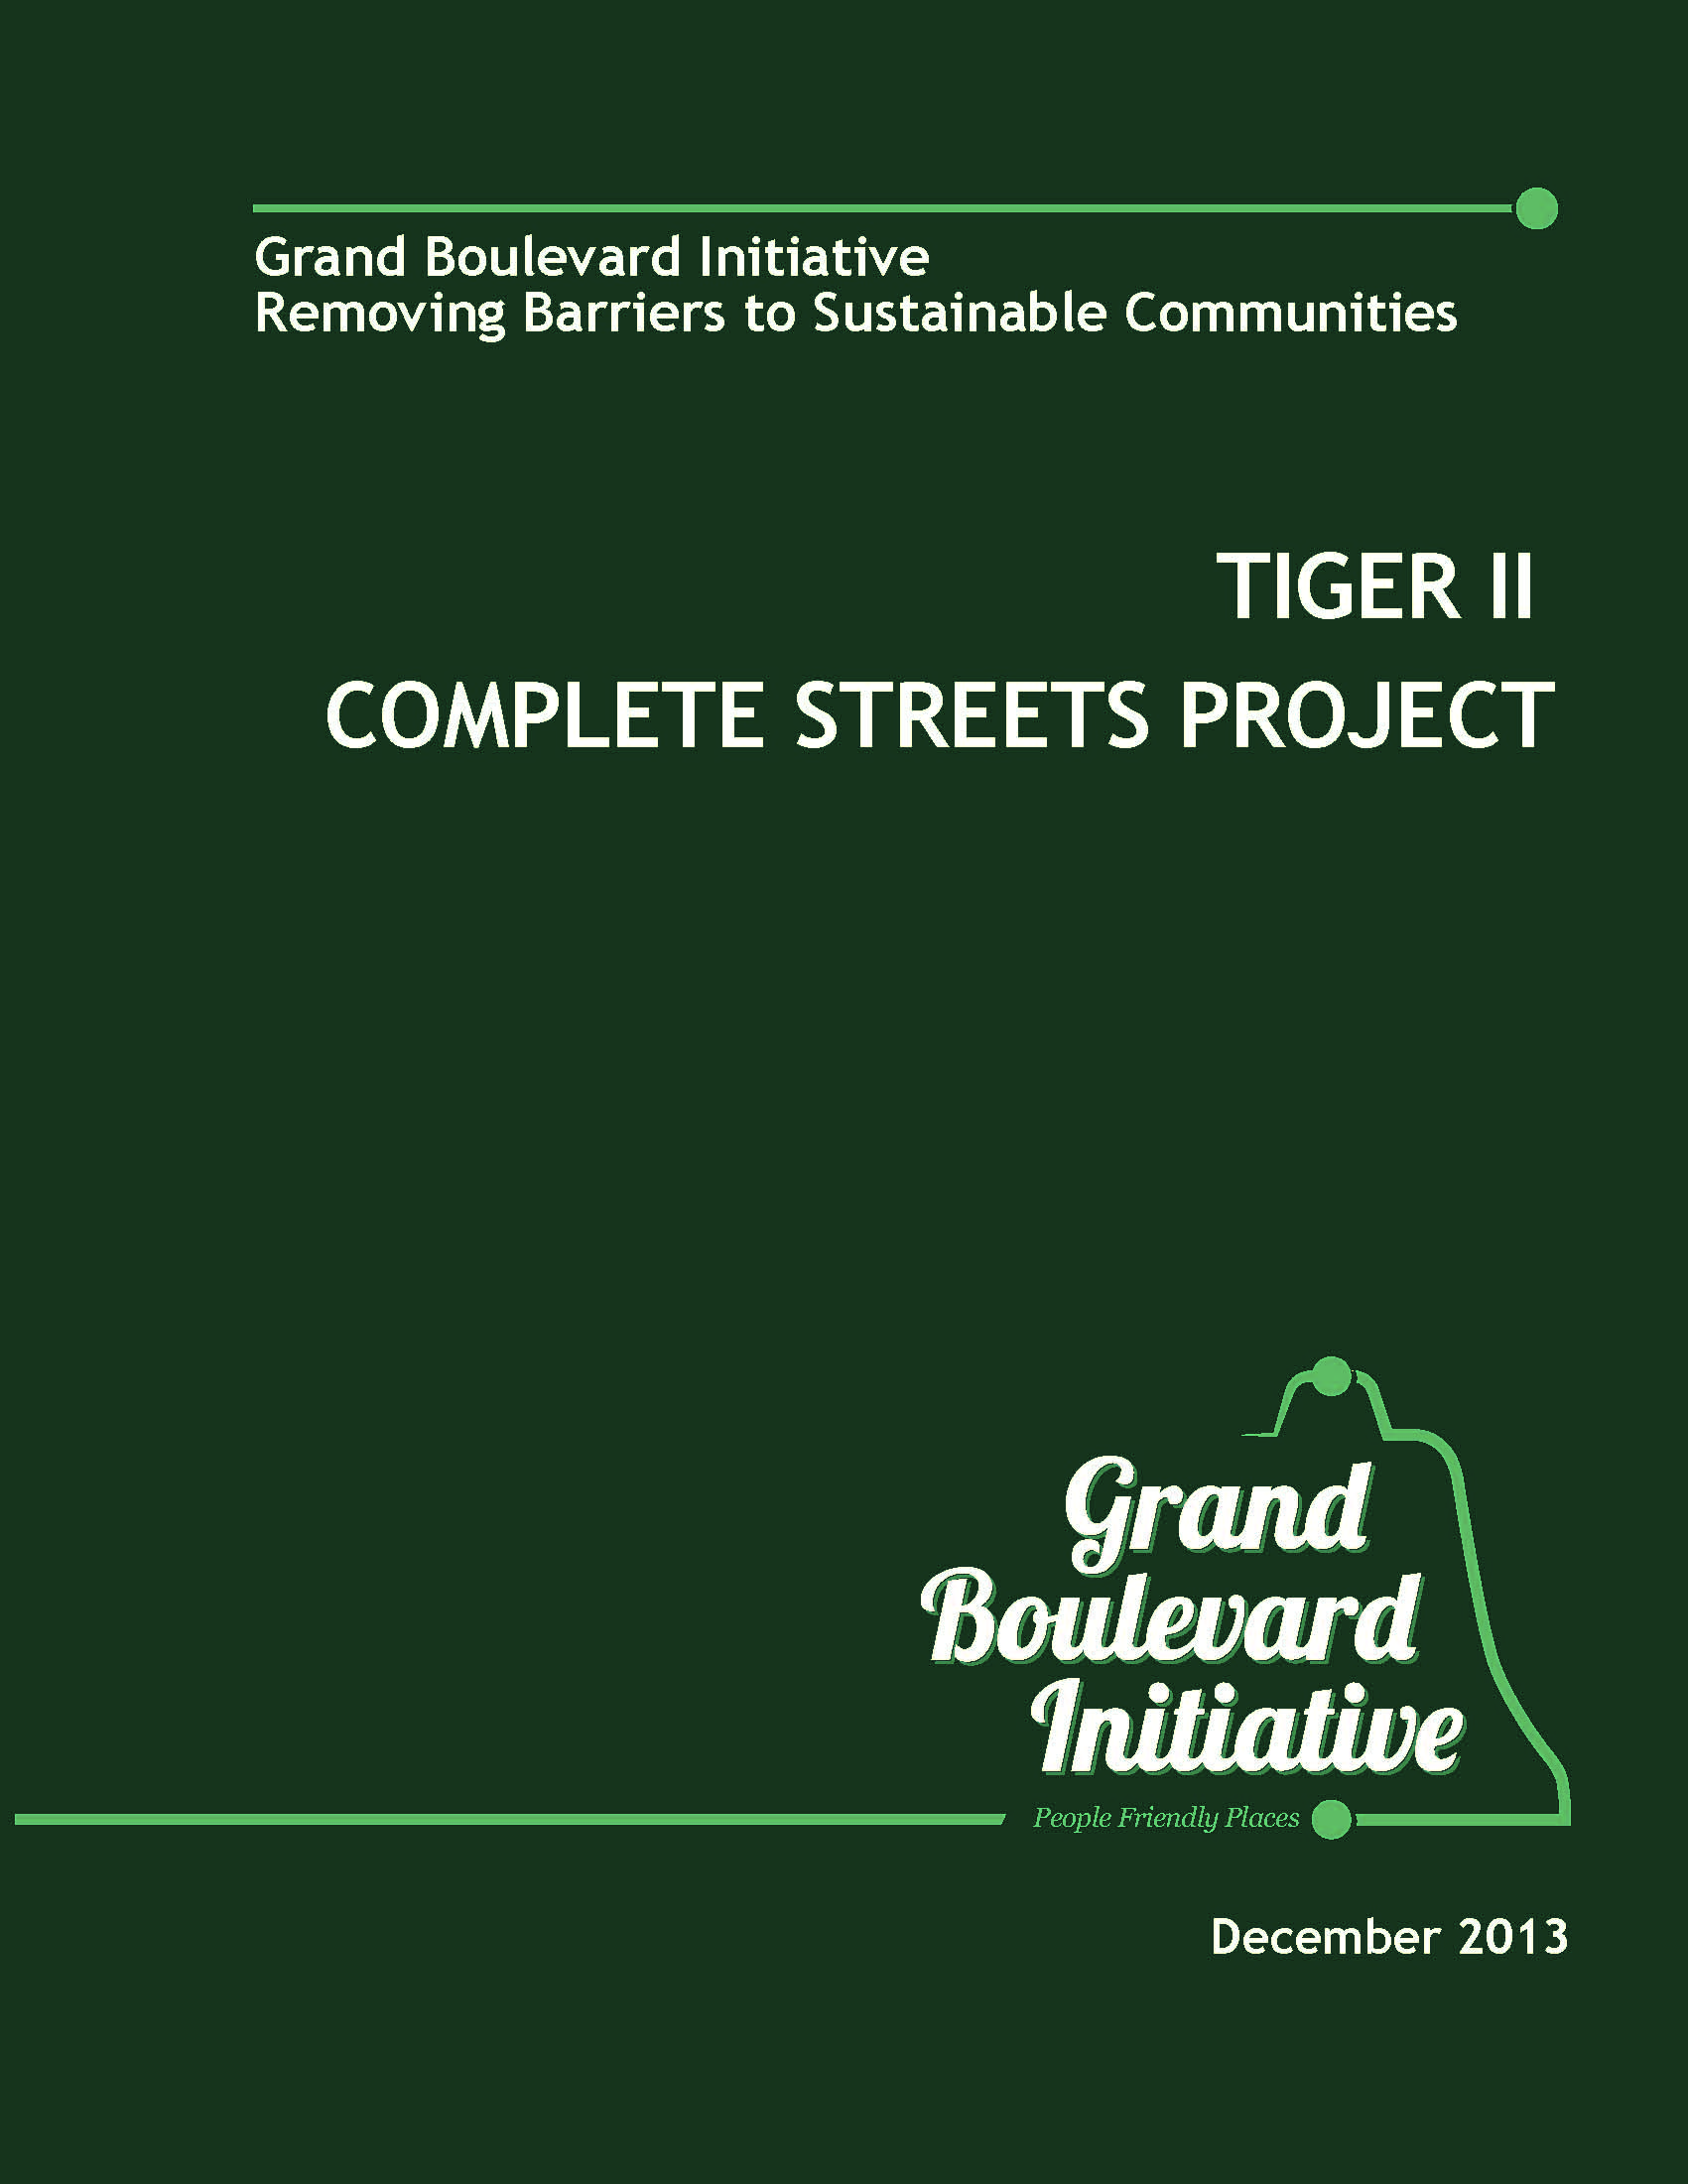 TIGERII Complete Streets Cover